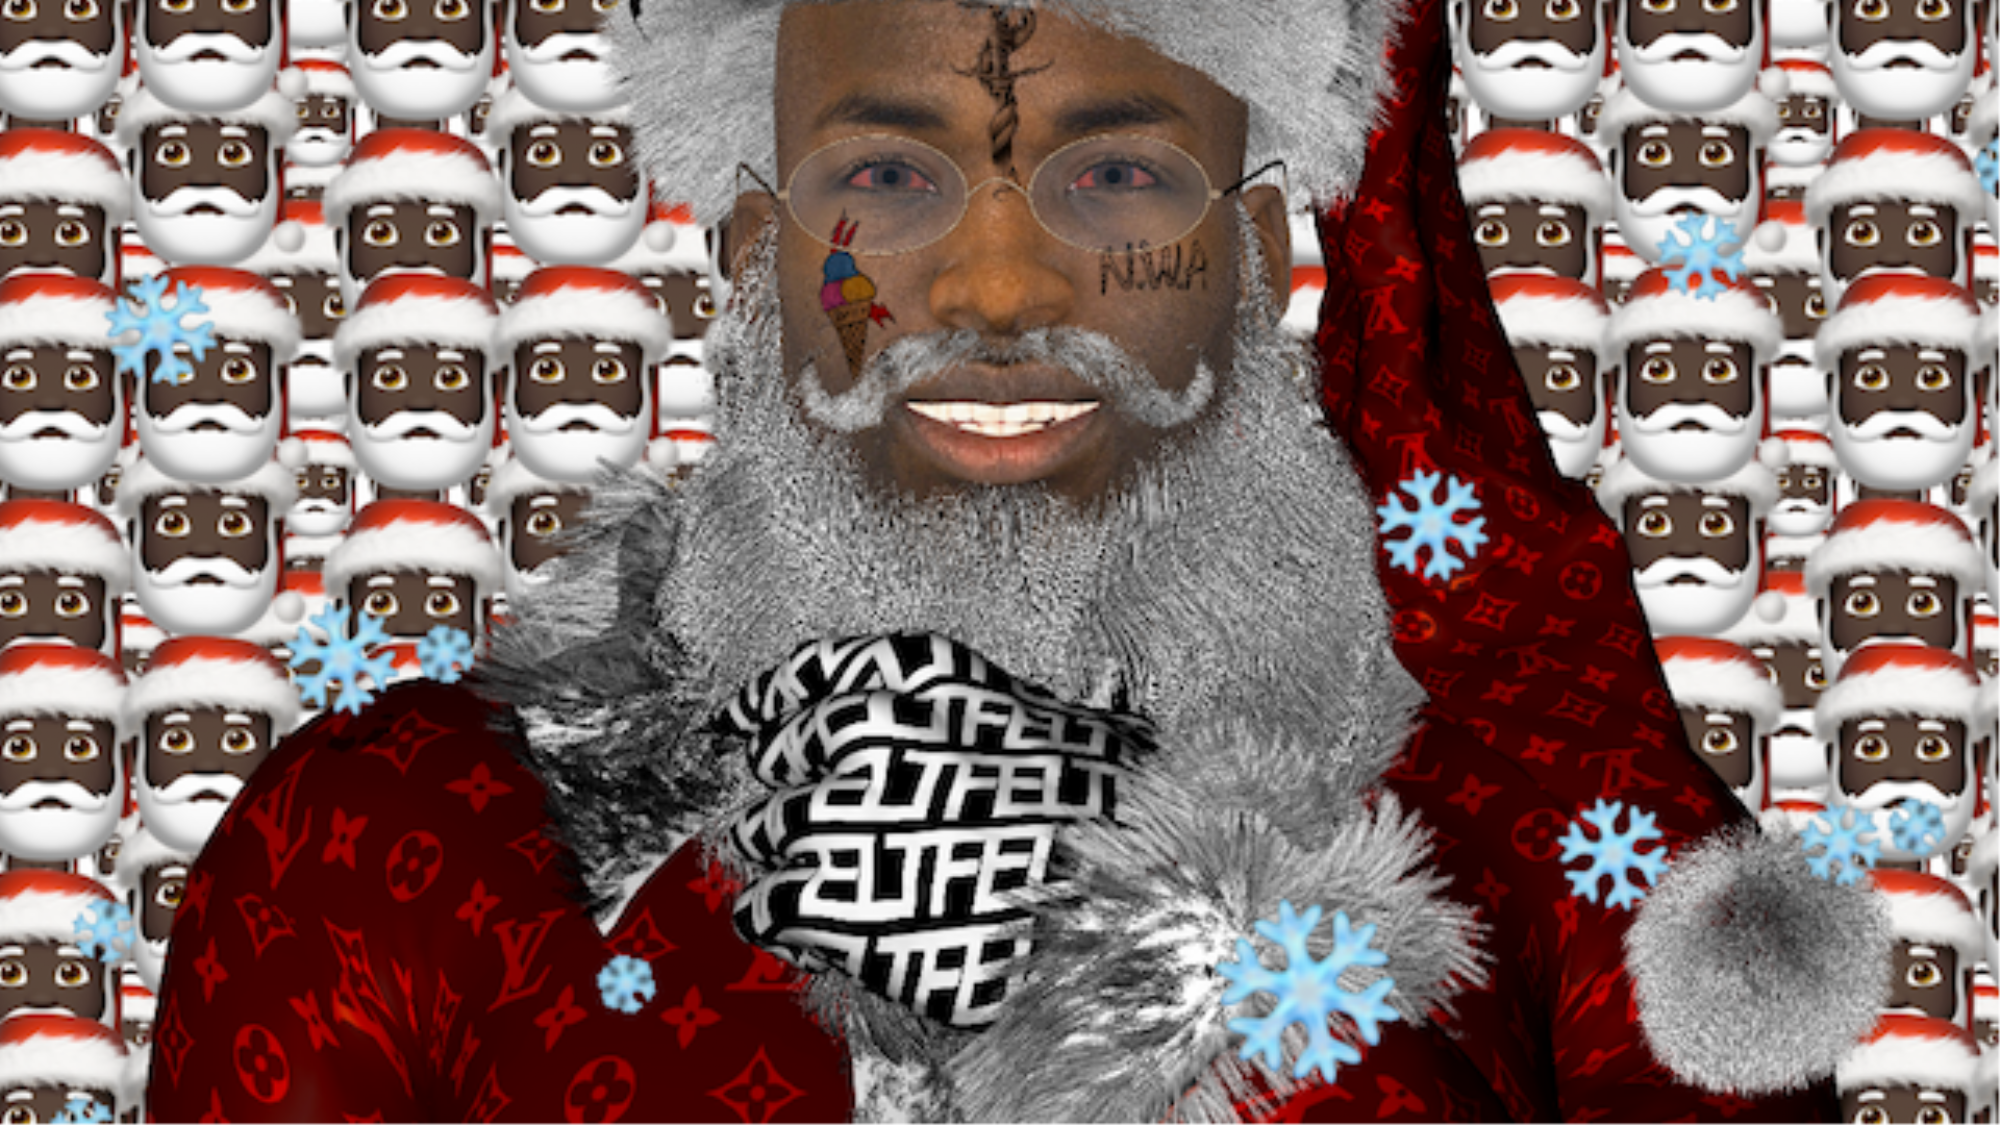 Gucci Mane Christmas.Premiere East Atlanta Santa Gucci Mane Goes Cgi For